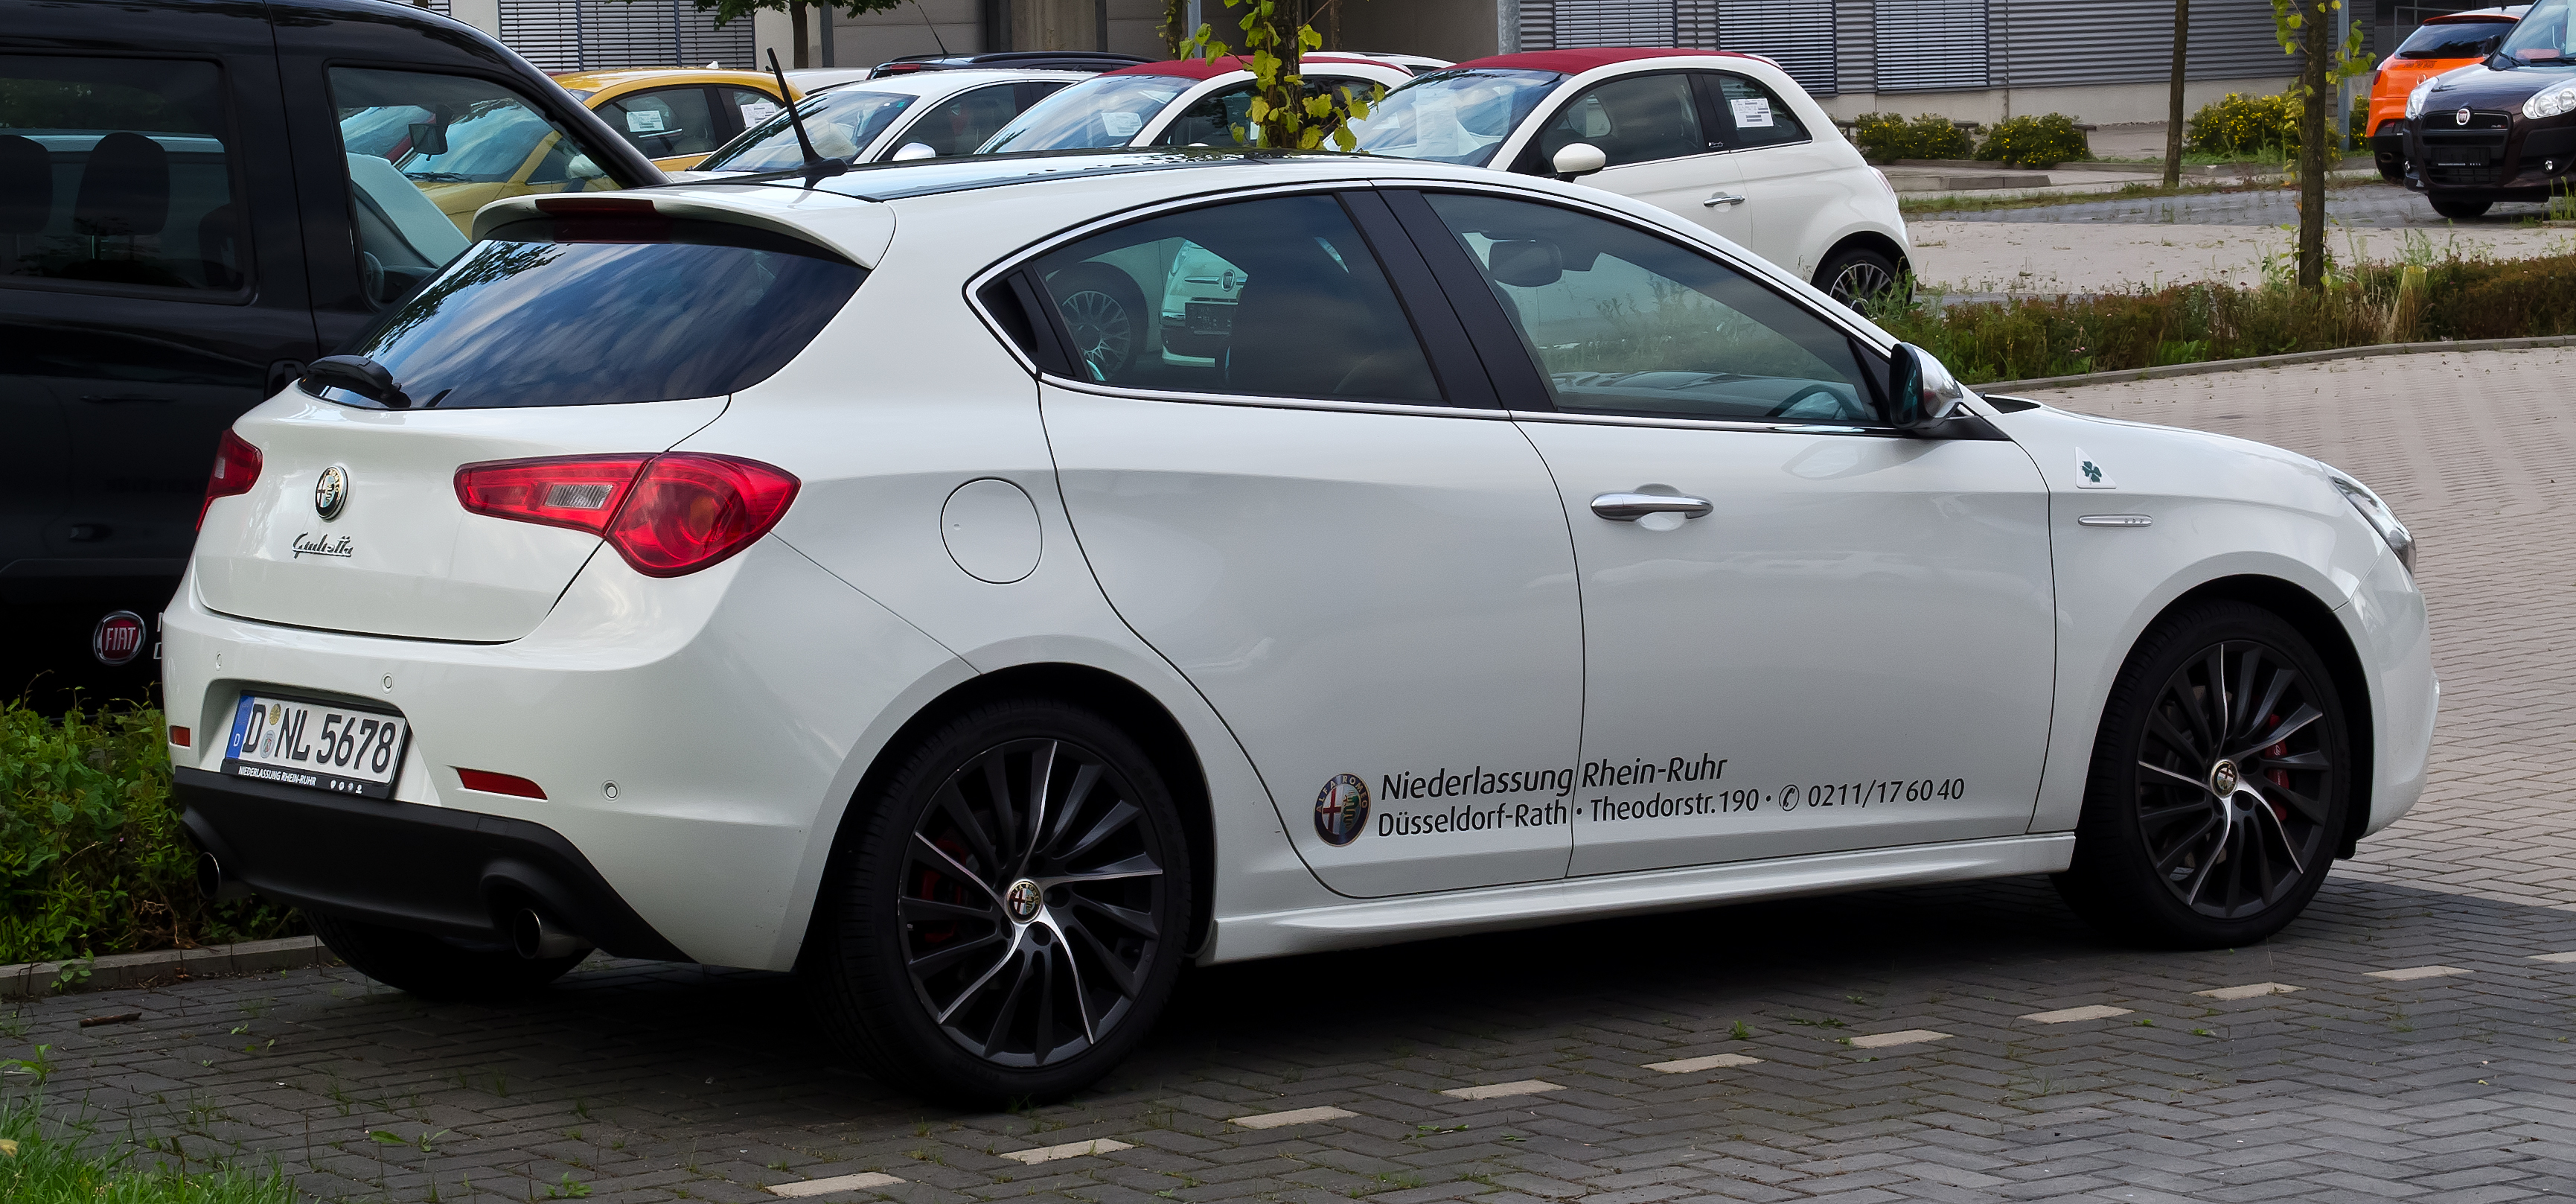 Alfa romeo quadrifoglio price south africa 13